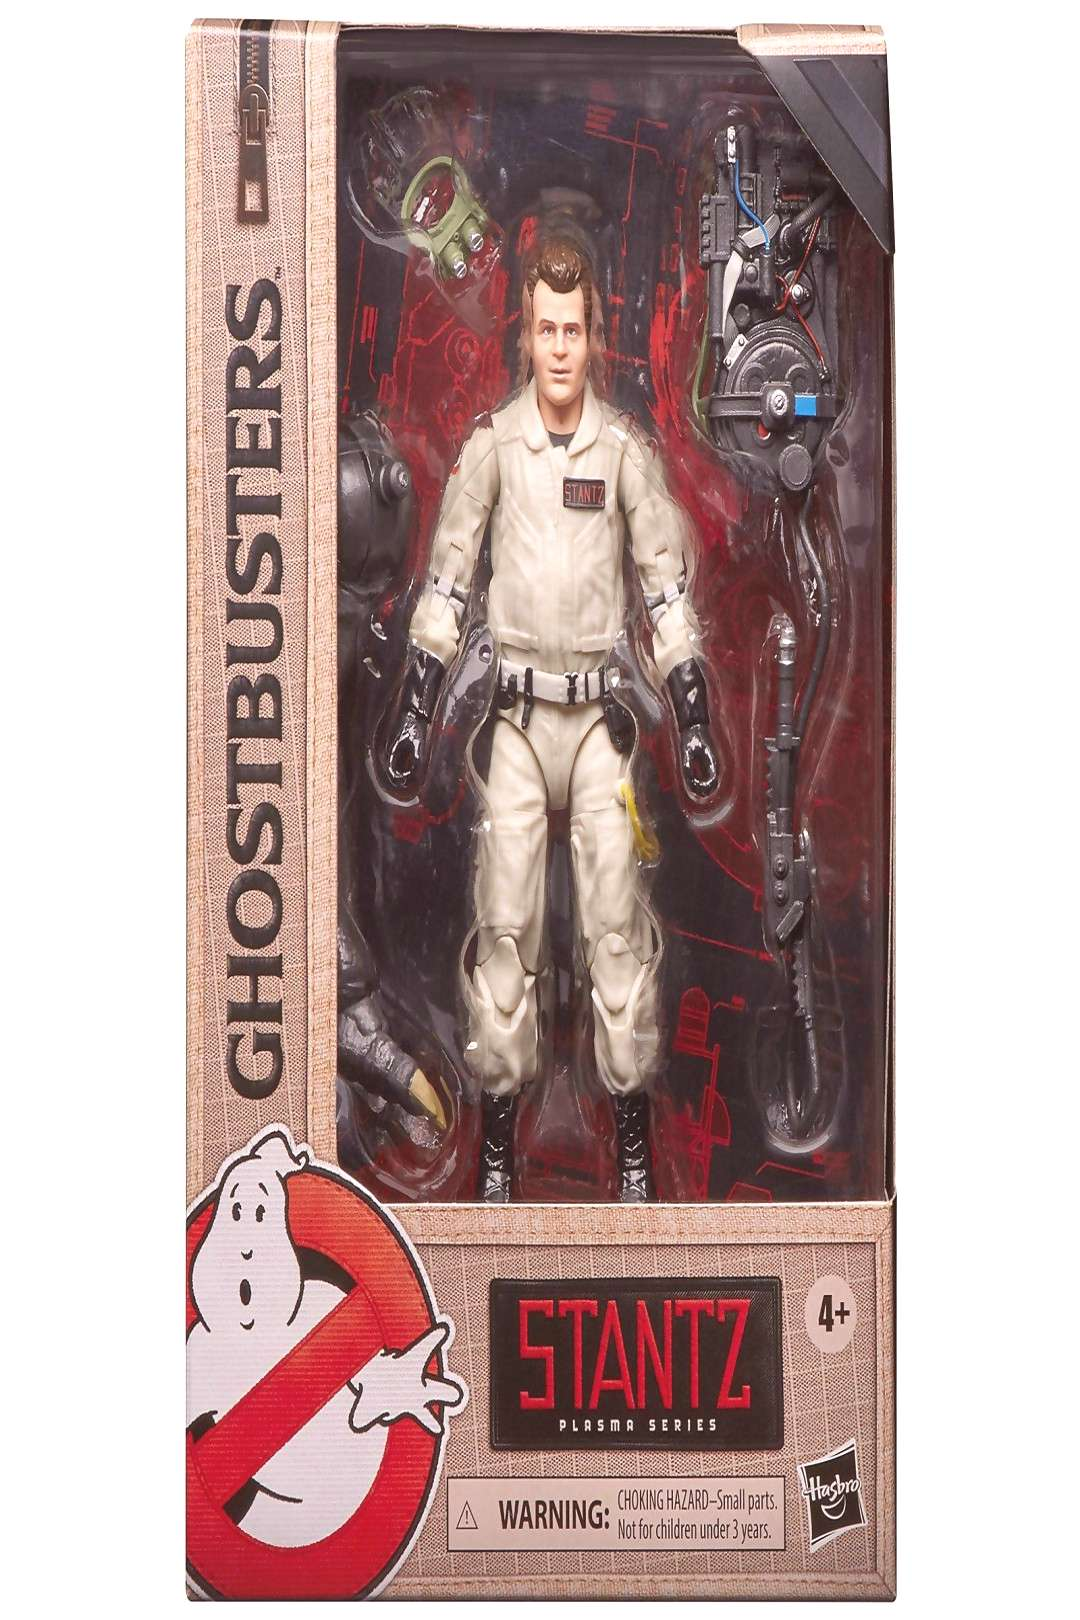 Hasbro Ghostbusters Plasma Series Ray Stantz Toy 6-Inch-Scale Collectible Classic 1984 Ghostbusters